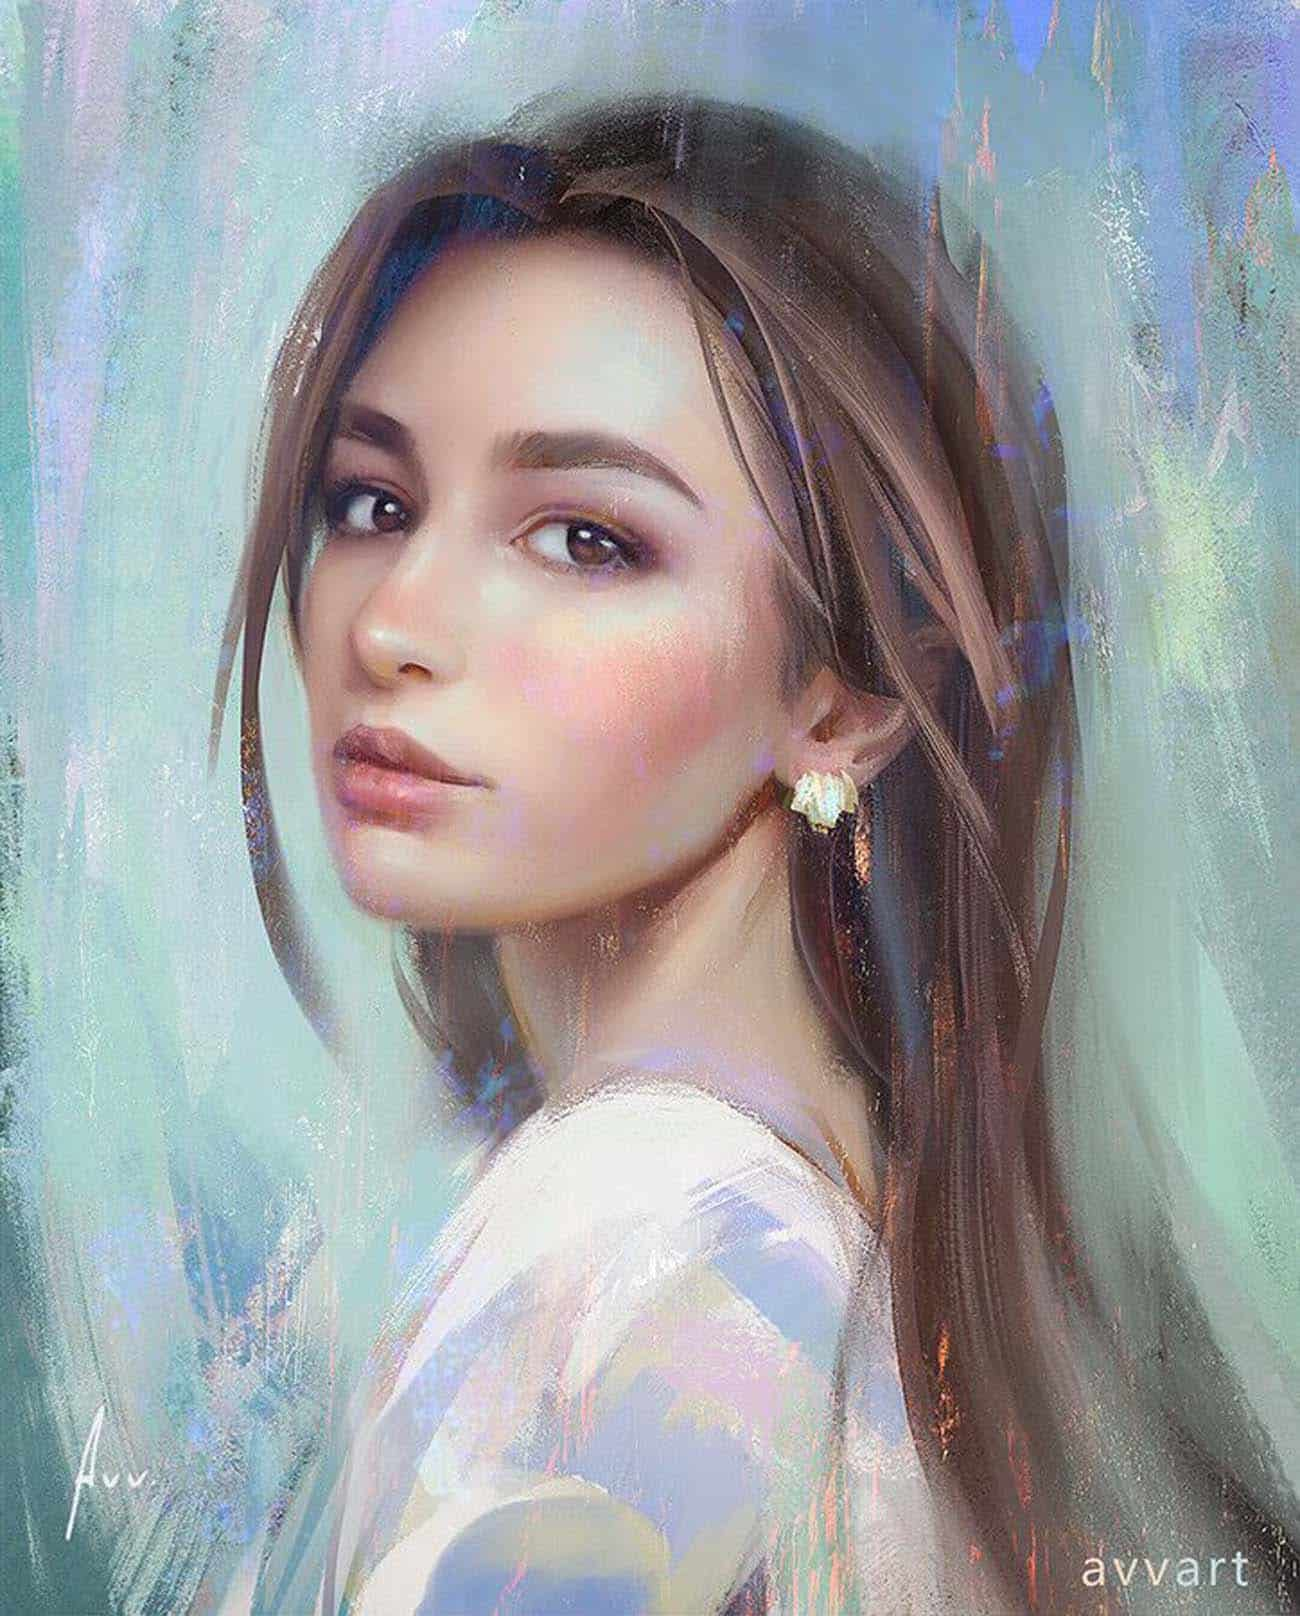 Aleksei Vinogradov | Paintable.cc Digital Painting Inspiration - Learn the Art of Digital Painting! #digitalpainting #digitalart